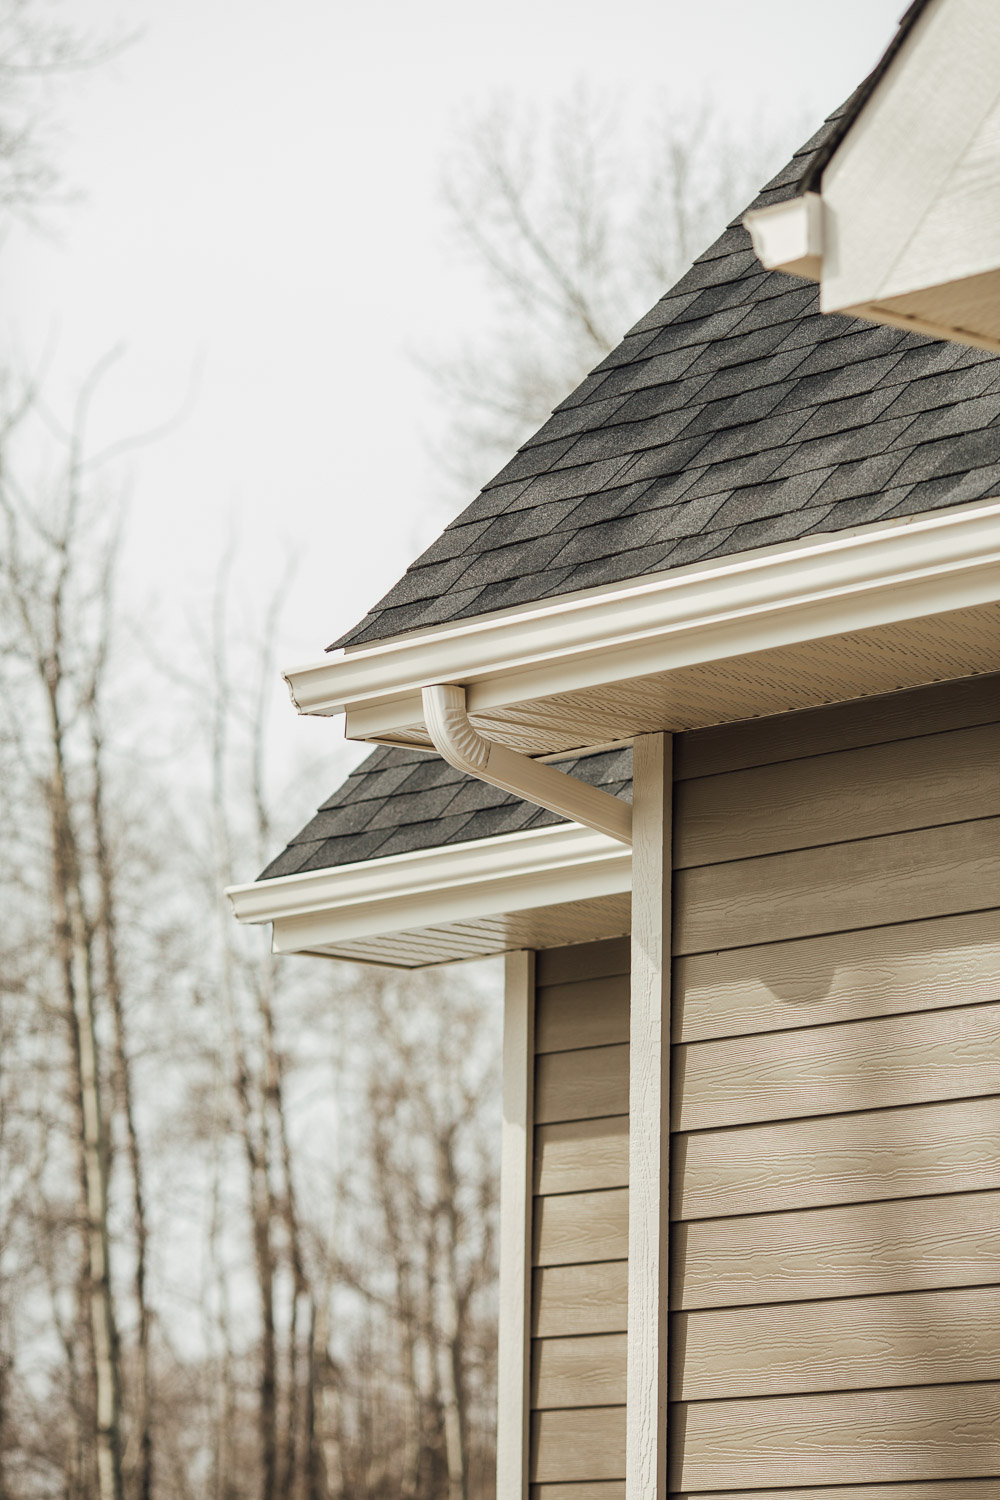 Roofing 1500px-018.jpg